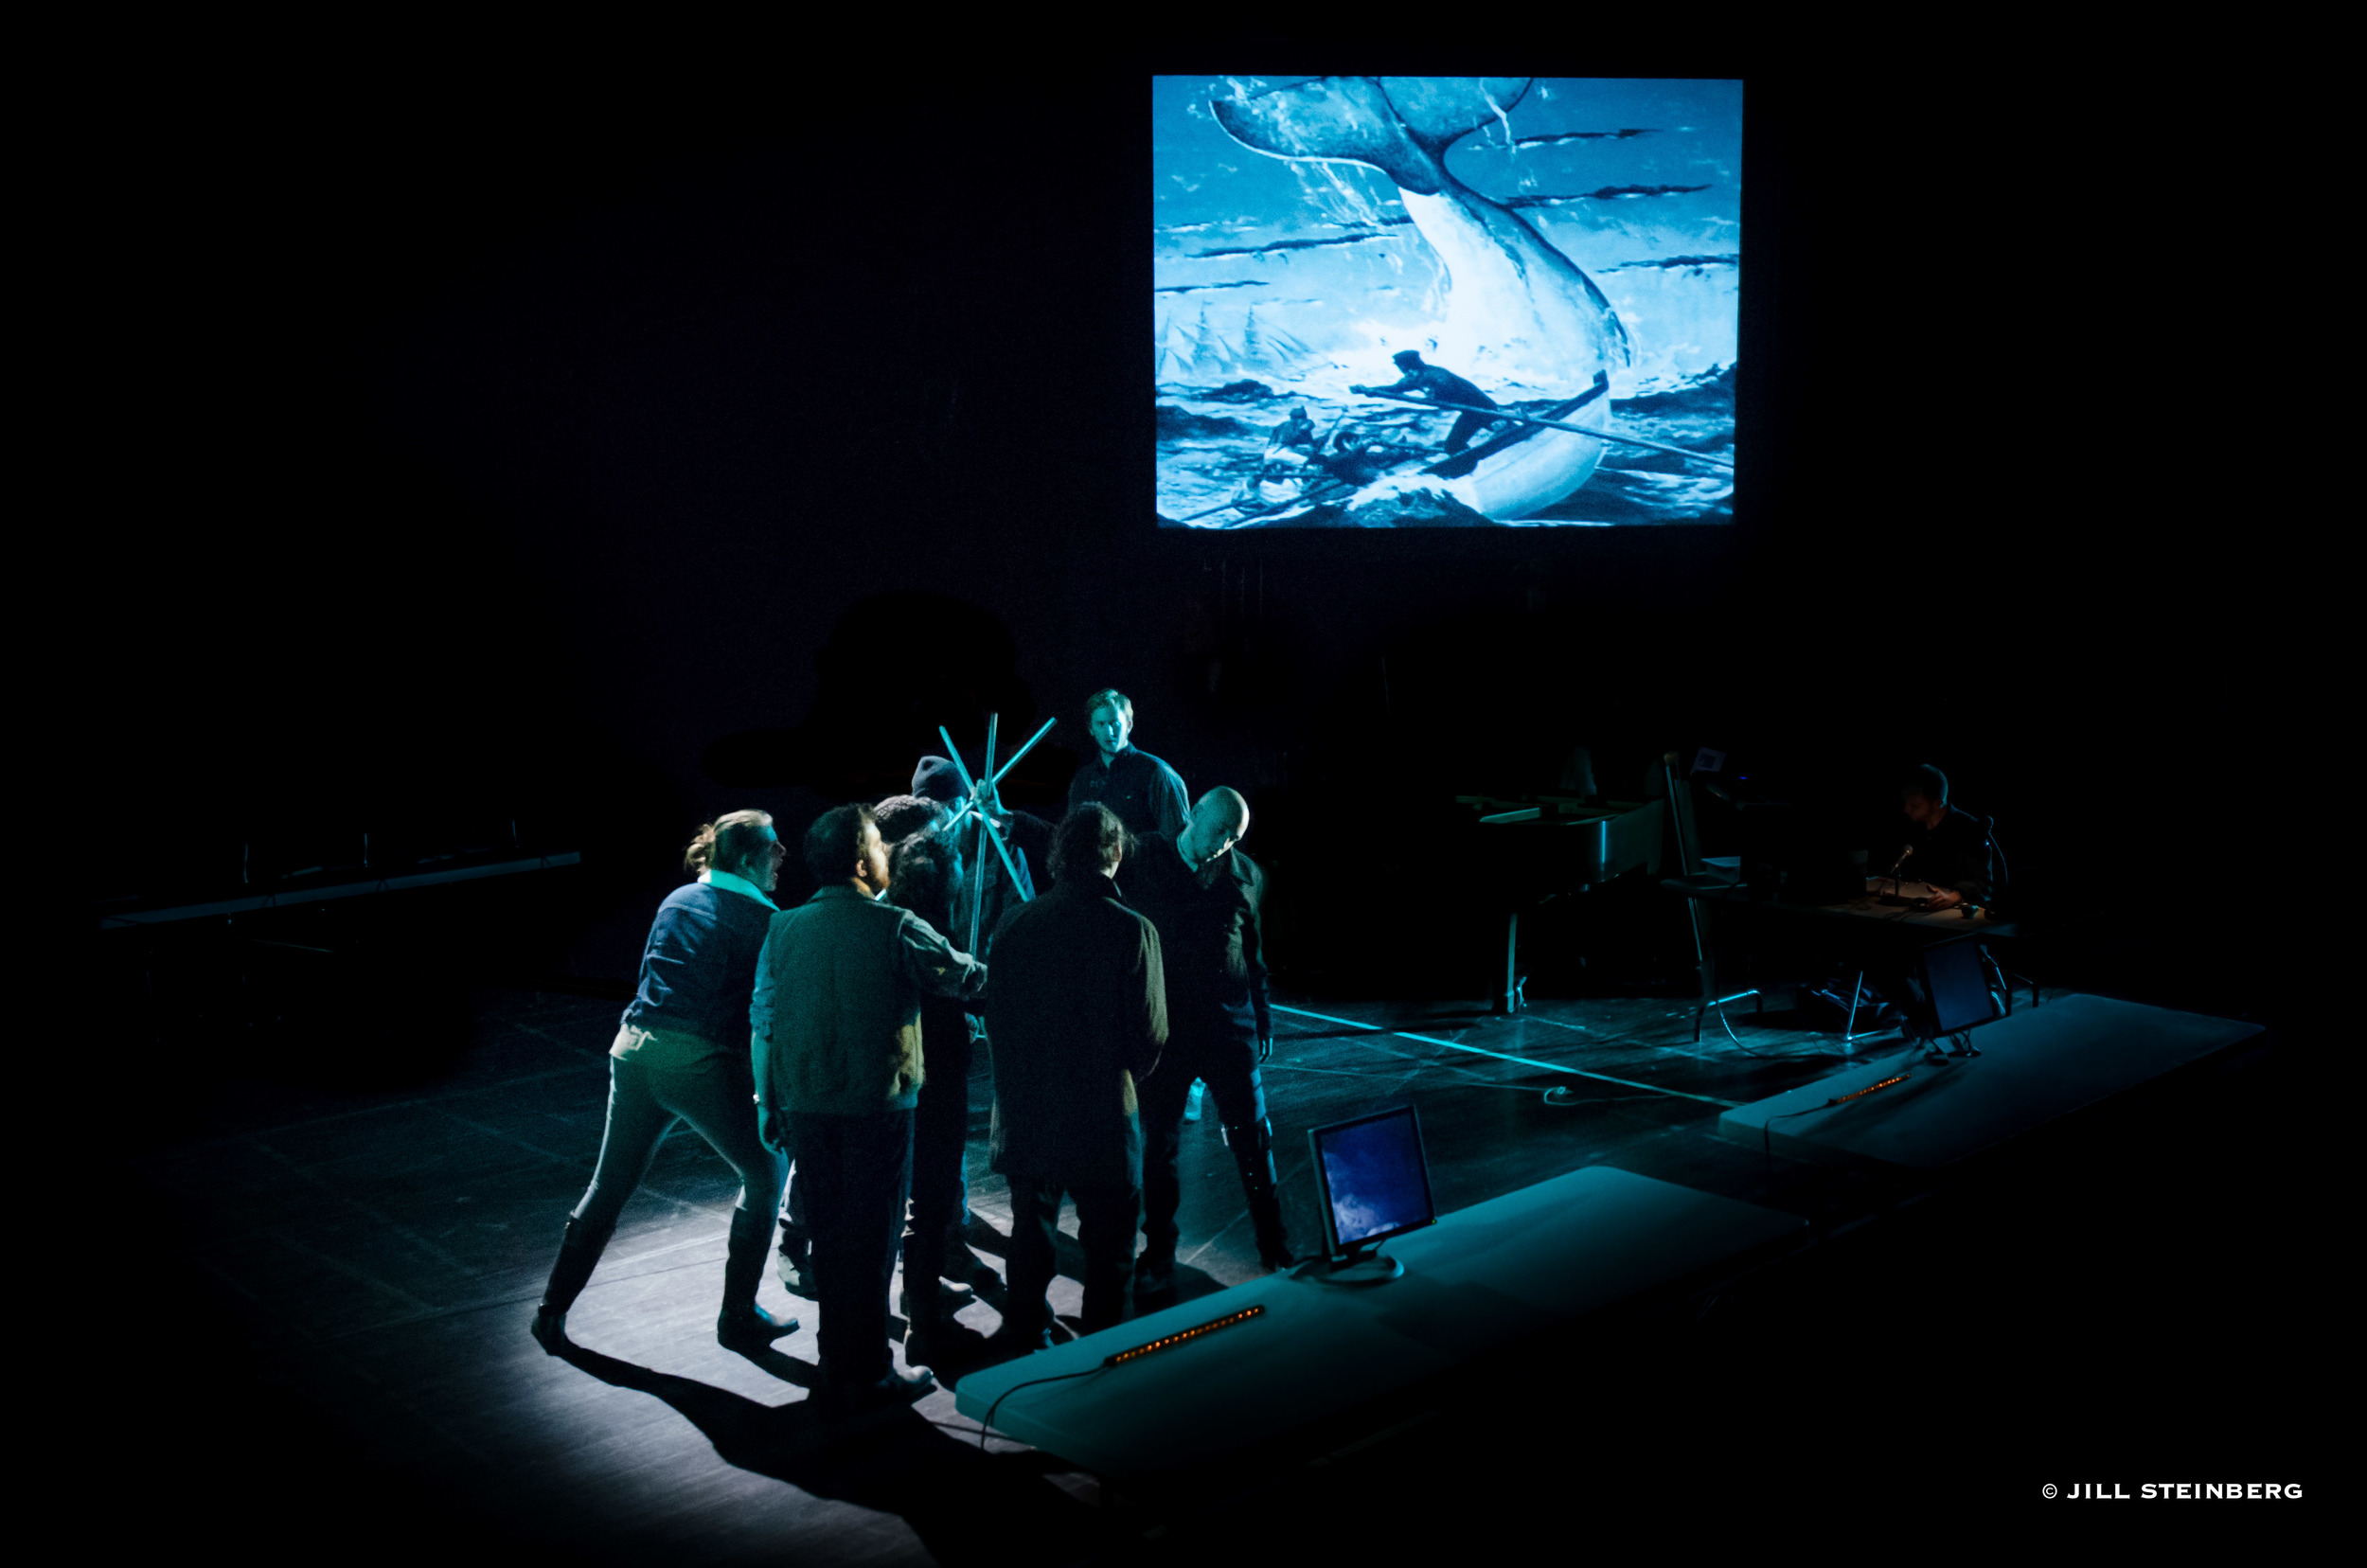 2014-04-11 - Moby Dick — Rehearsed_Moby Dick - Rehearsed_0404_.jpg